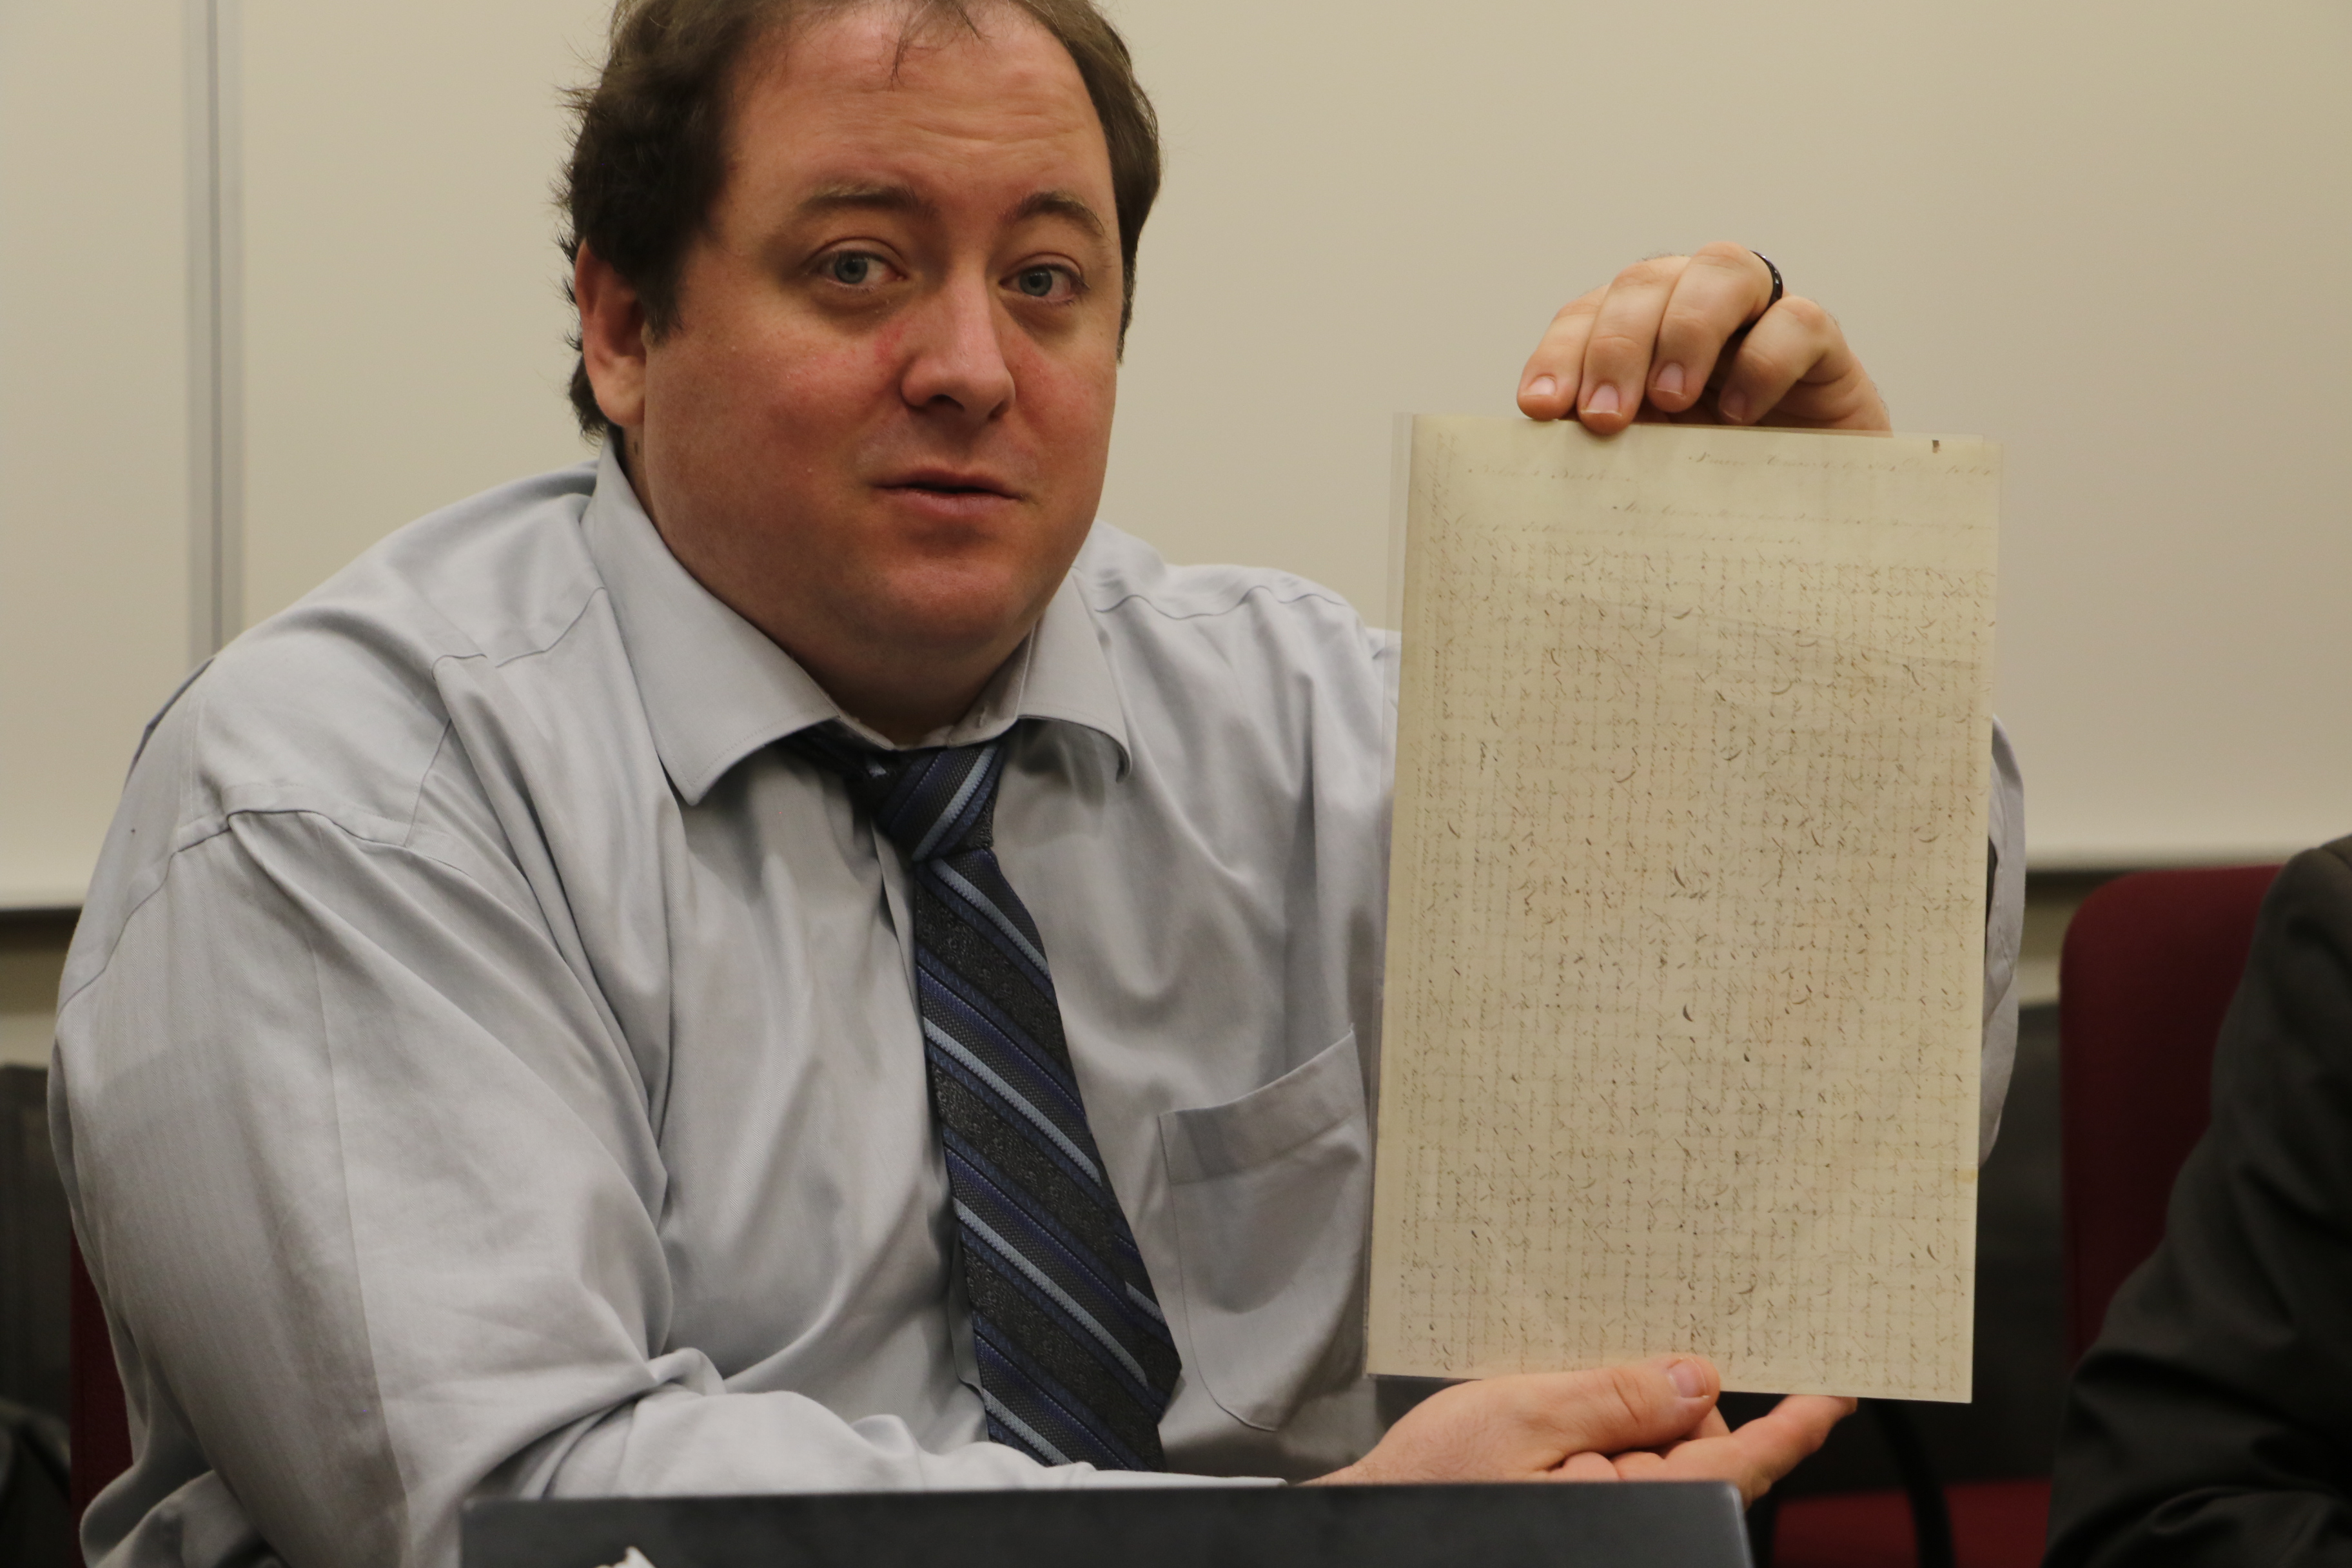 Christopher J. Blythe, volume editor, displays cross-written letter sent by Joseph Smith to members of the Twelve serving missions in England. It is one of 129 documents contained in latest Joseph Smith Papers release.